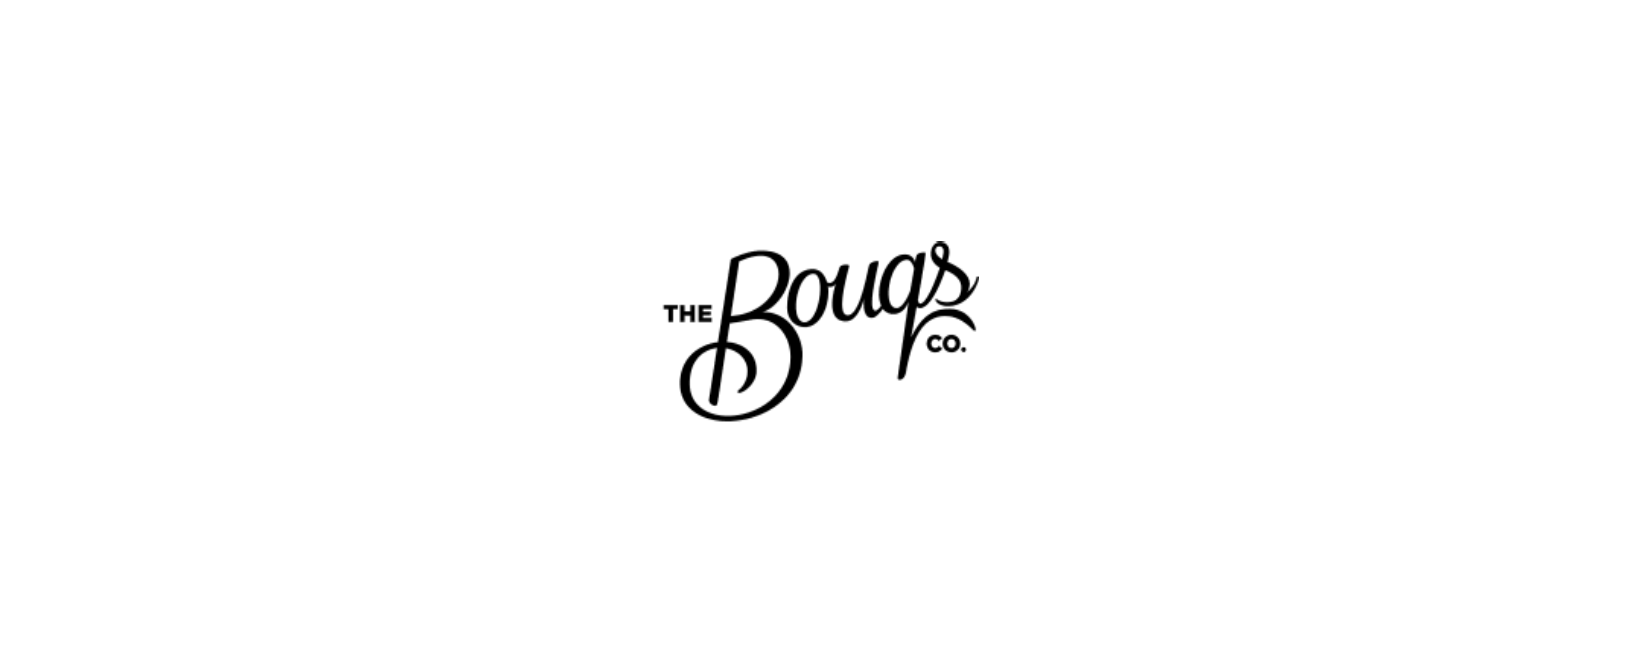 The bouqs Coupon Code 2021